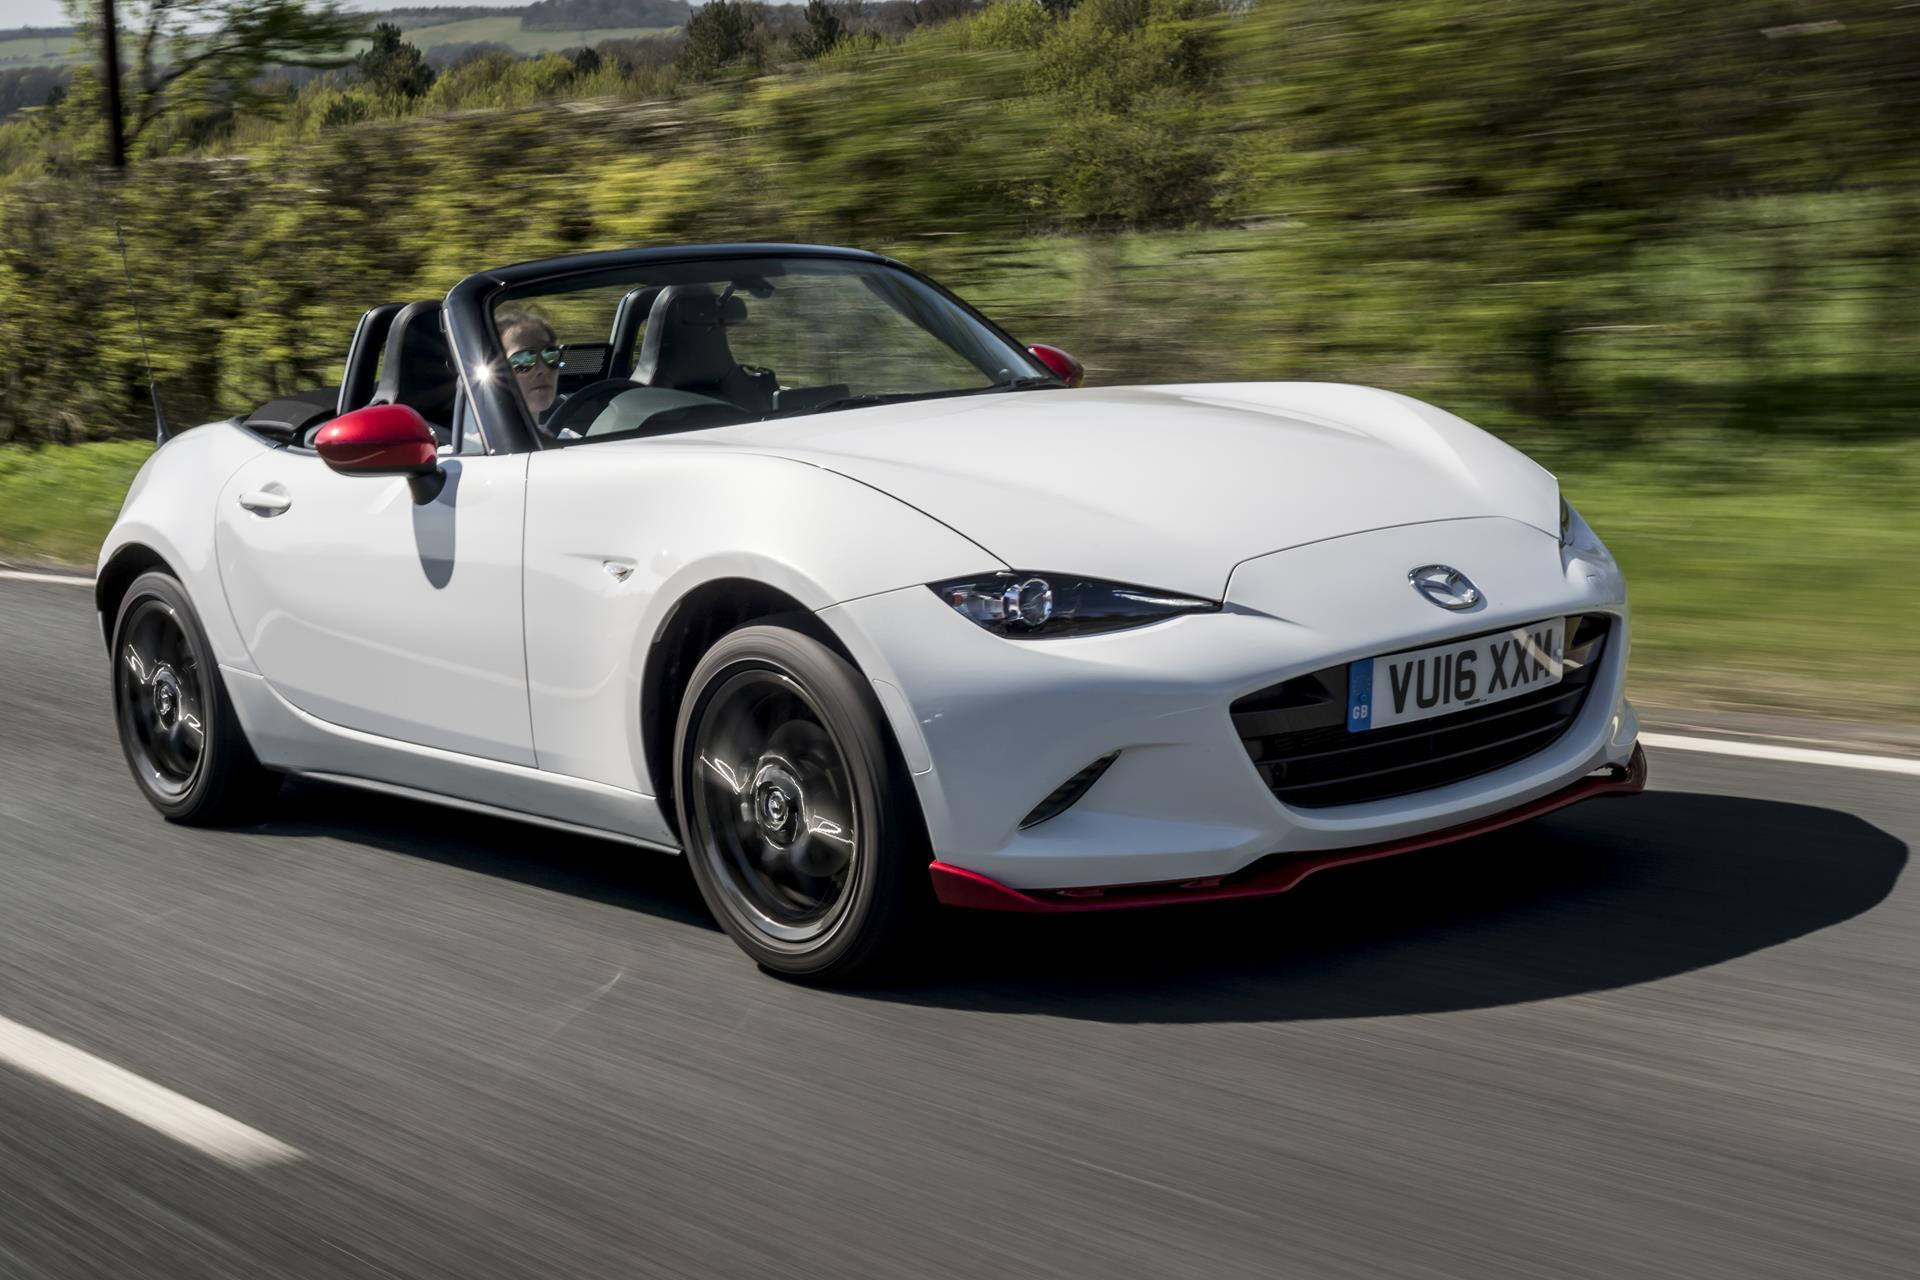 2016 Mazda MX-5 Icon Special Edition News and Information